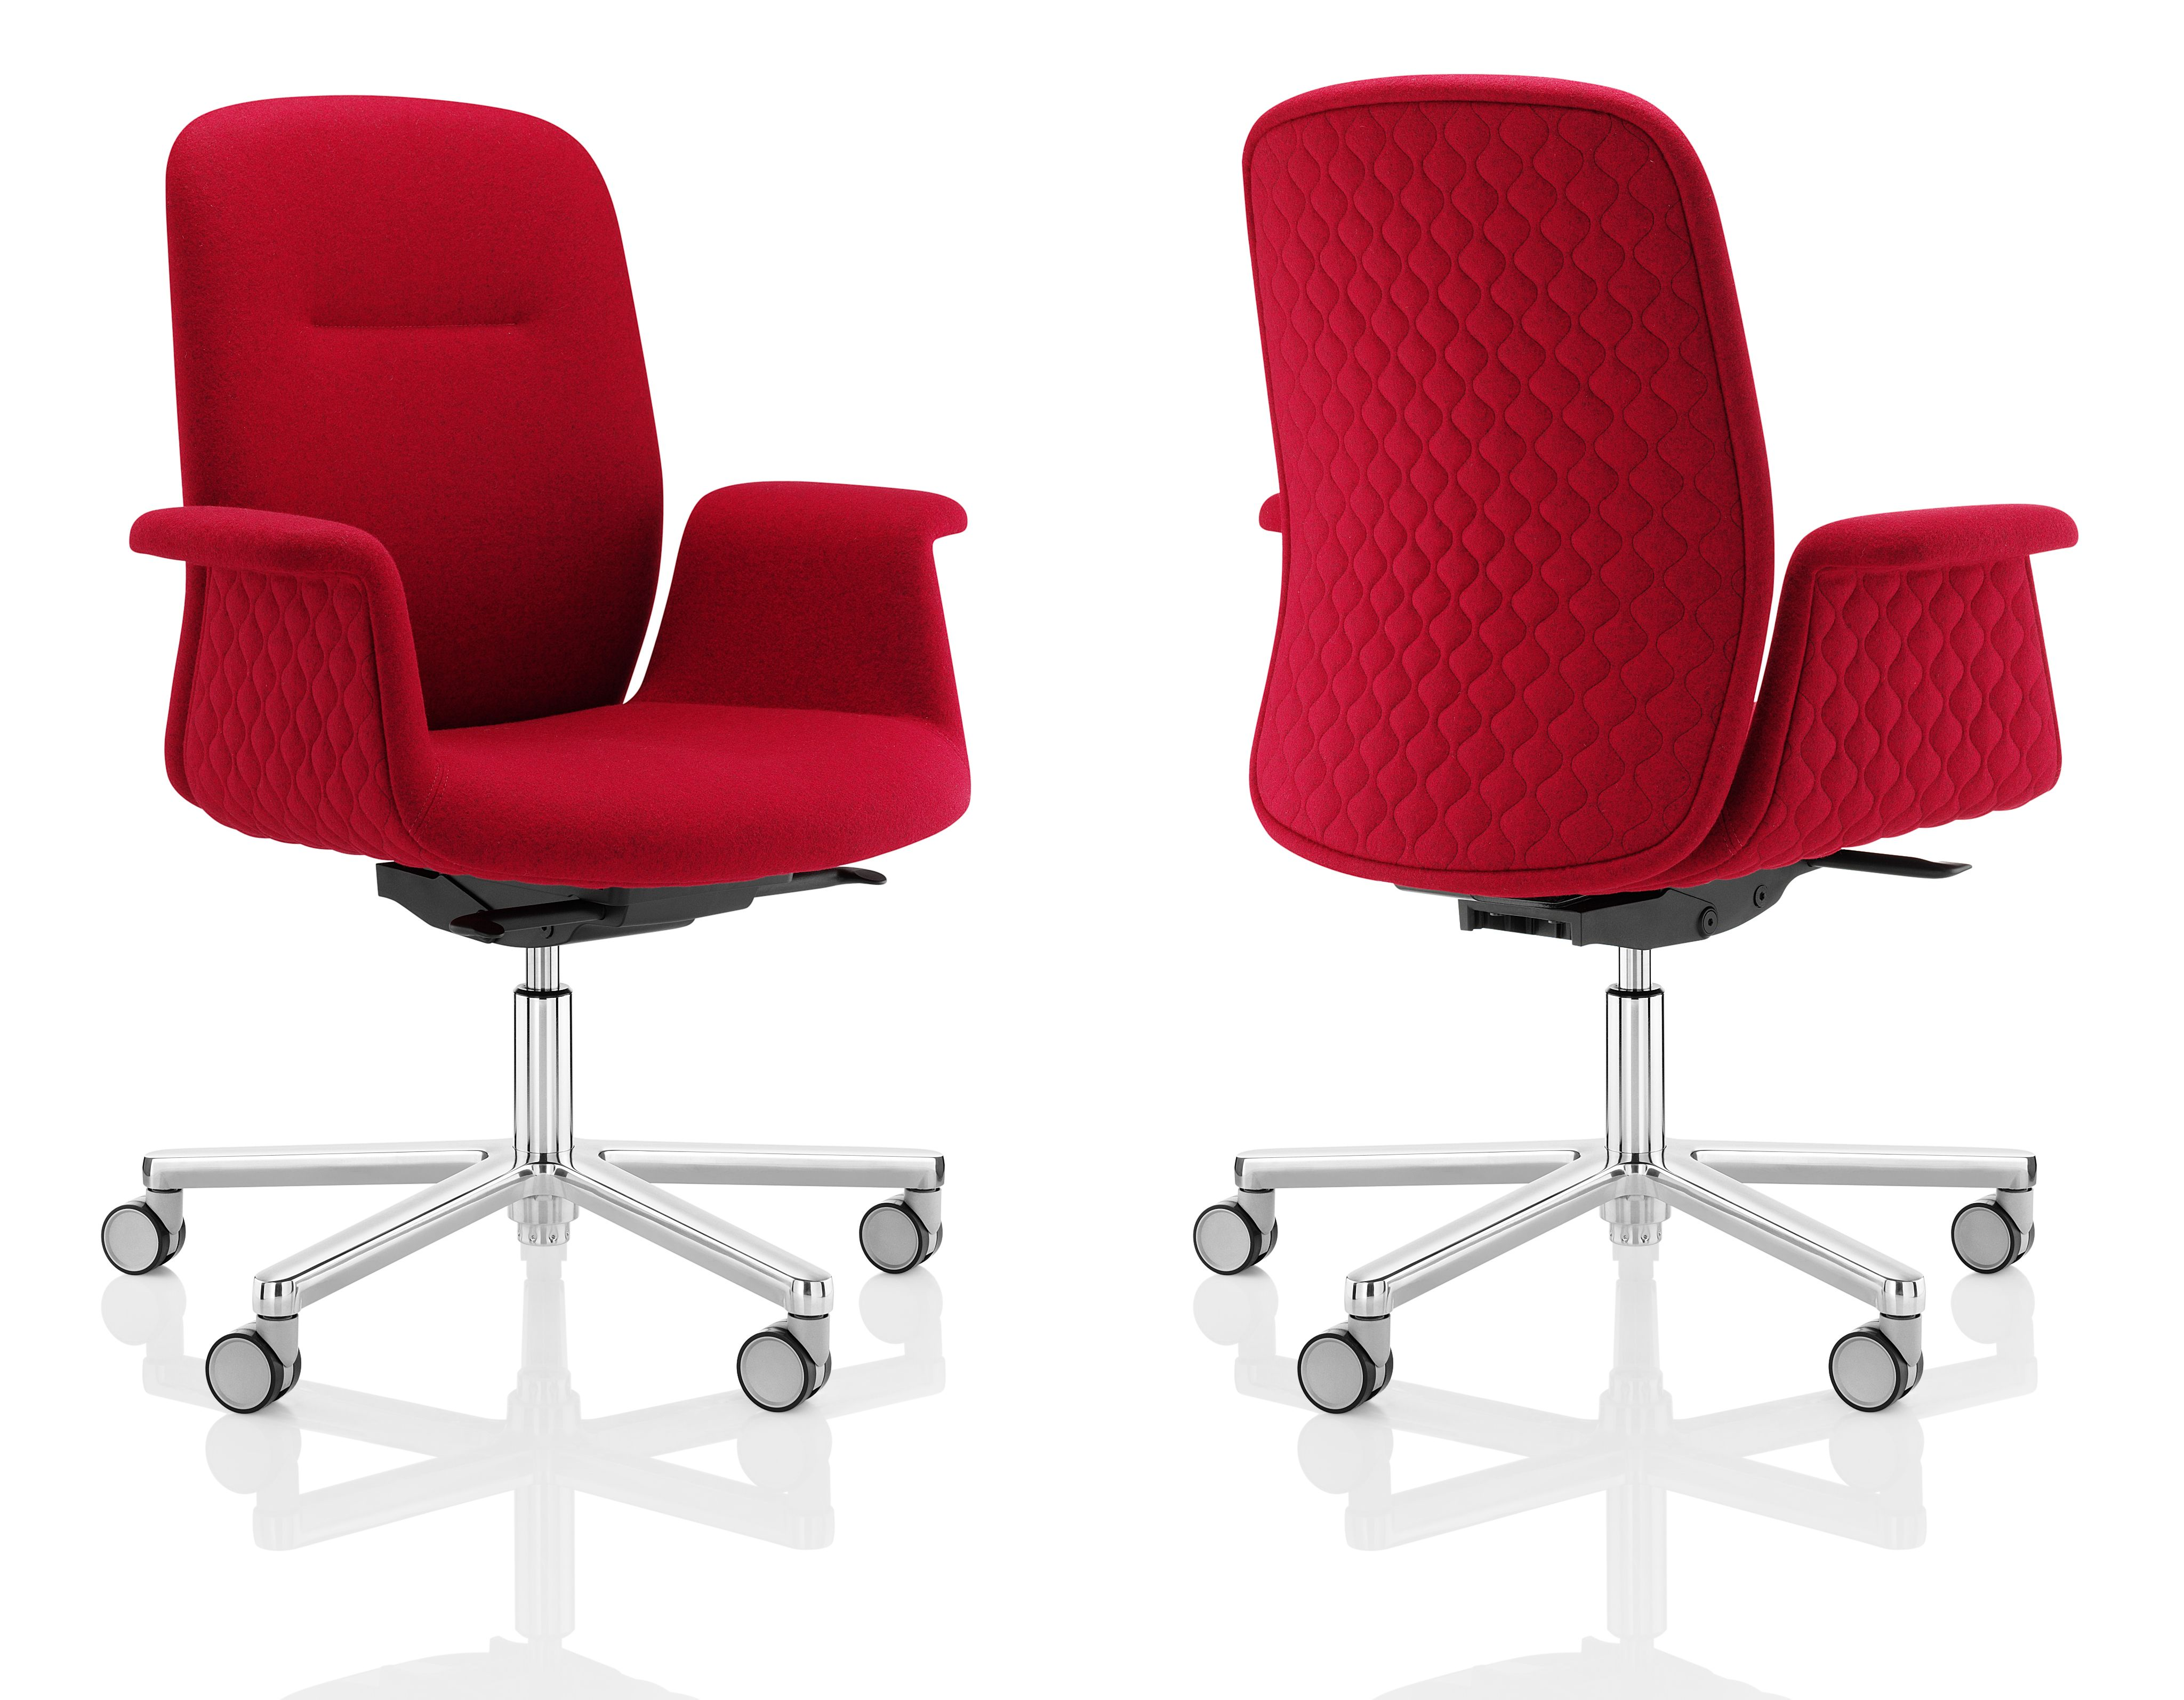 Boss Design launch a new work chair Mea This stylish new member